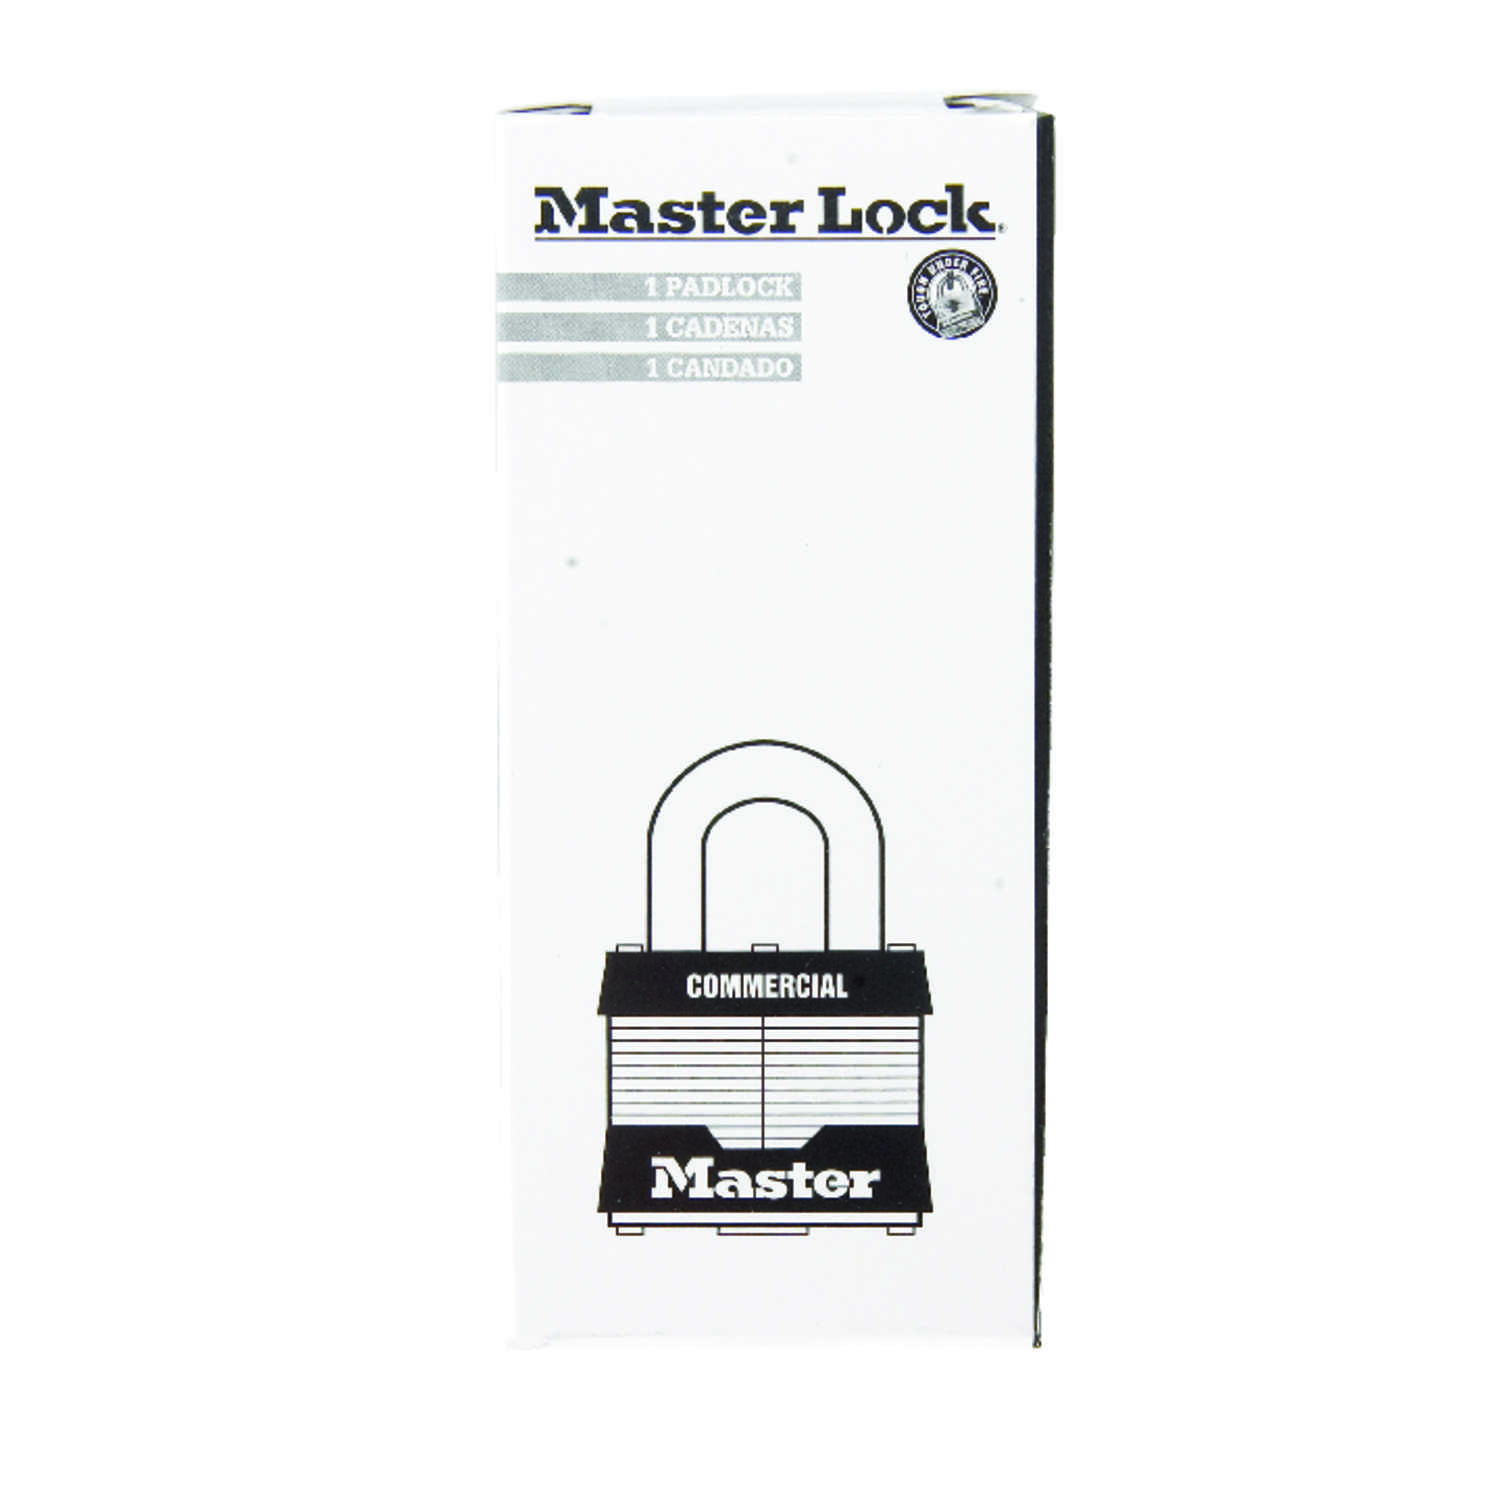 Master Lock  1-5/16 in. H x 1 in. W x 1-3/4 in. L Steel  Double Locking  Padlock  6 pk Keyed Alike